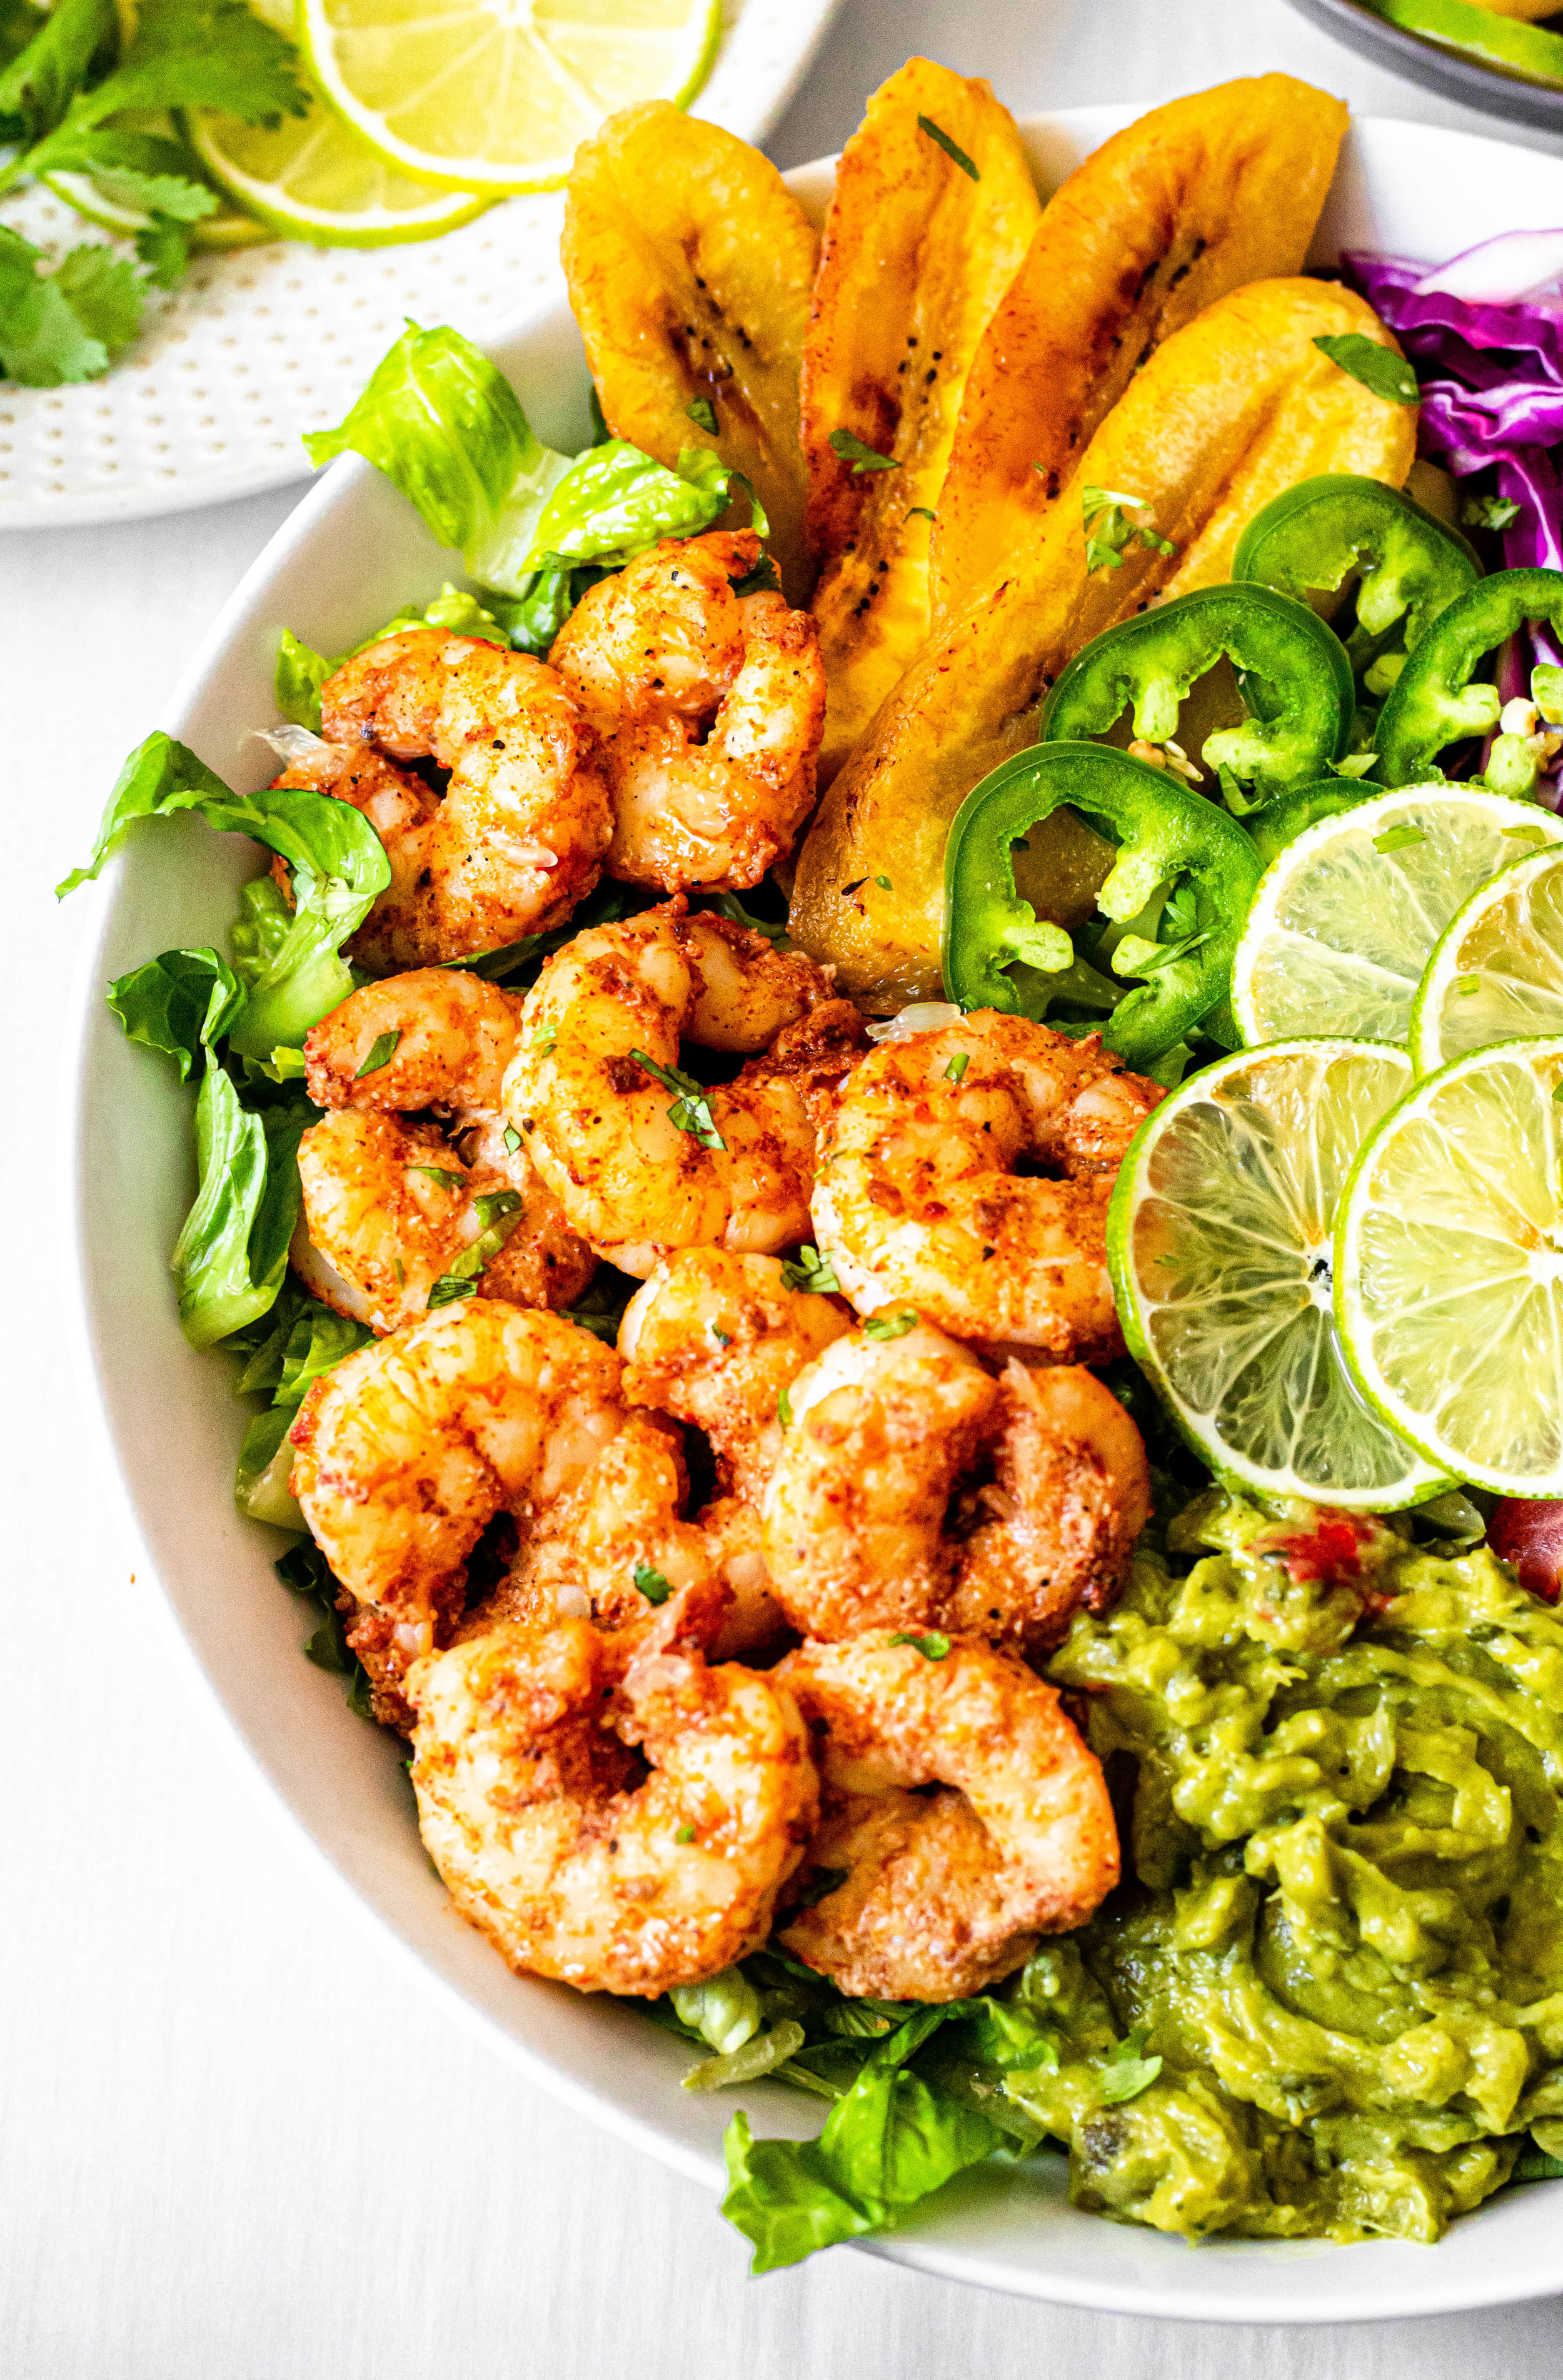 Chili Lime Shrimp Salad - Shrimp.jpg